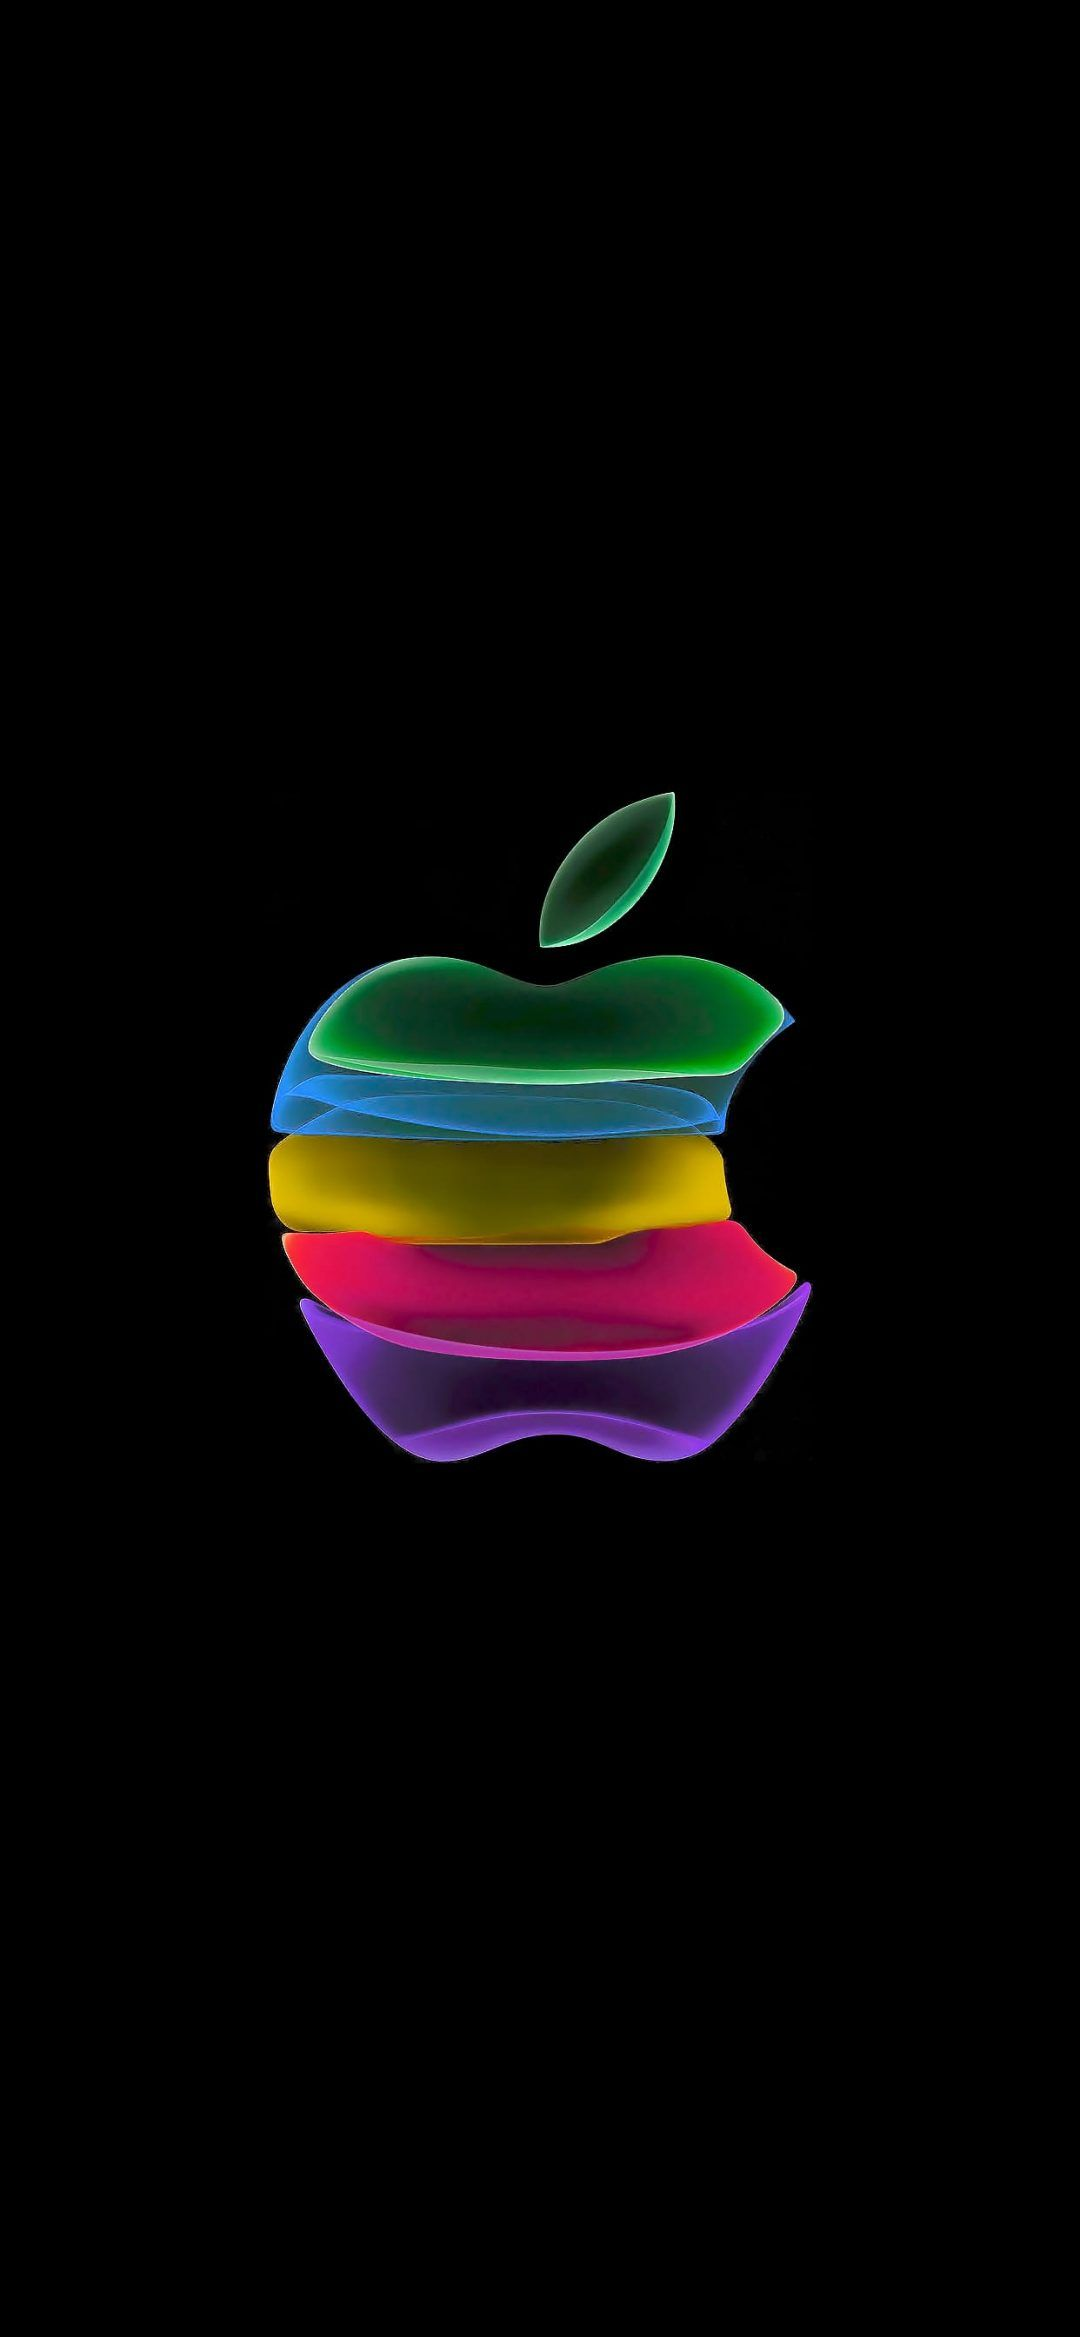 iPhone 12 Max Pro Wallpapers - Wallpaper Cave